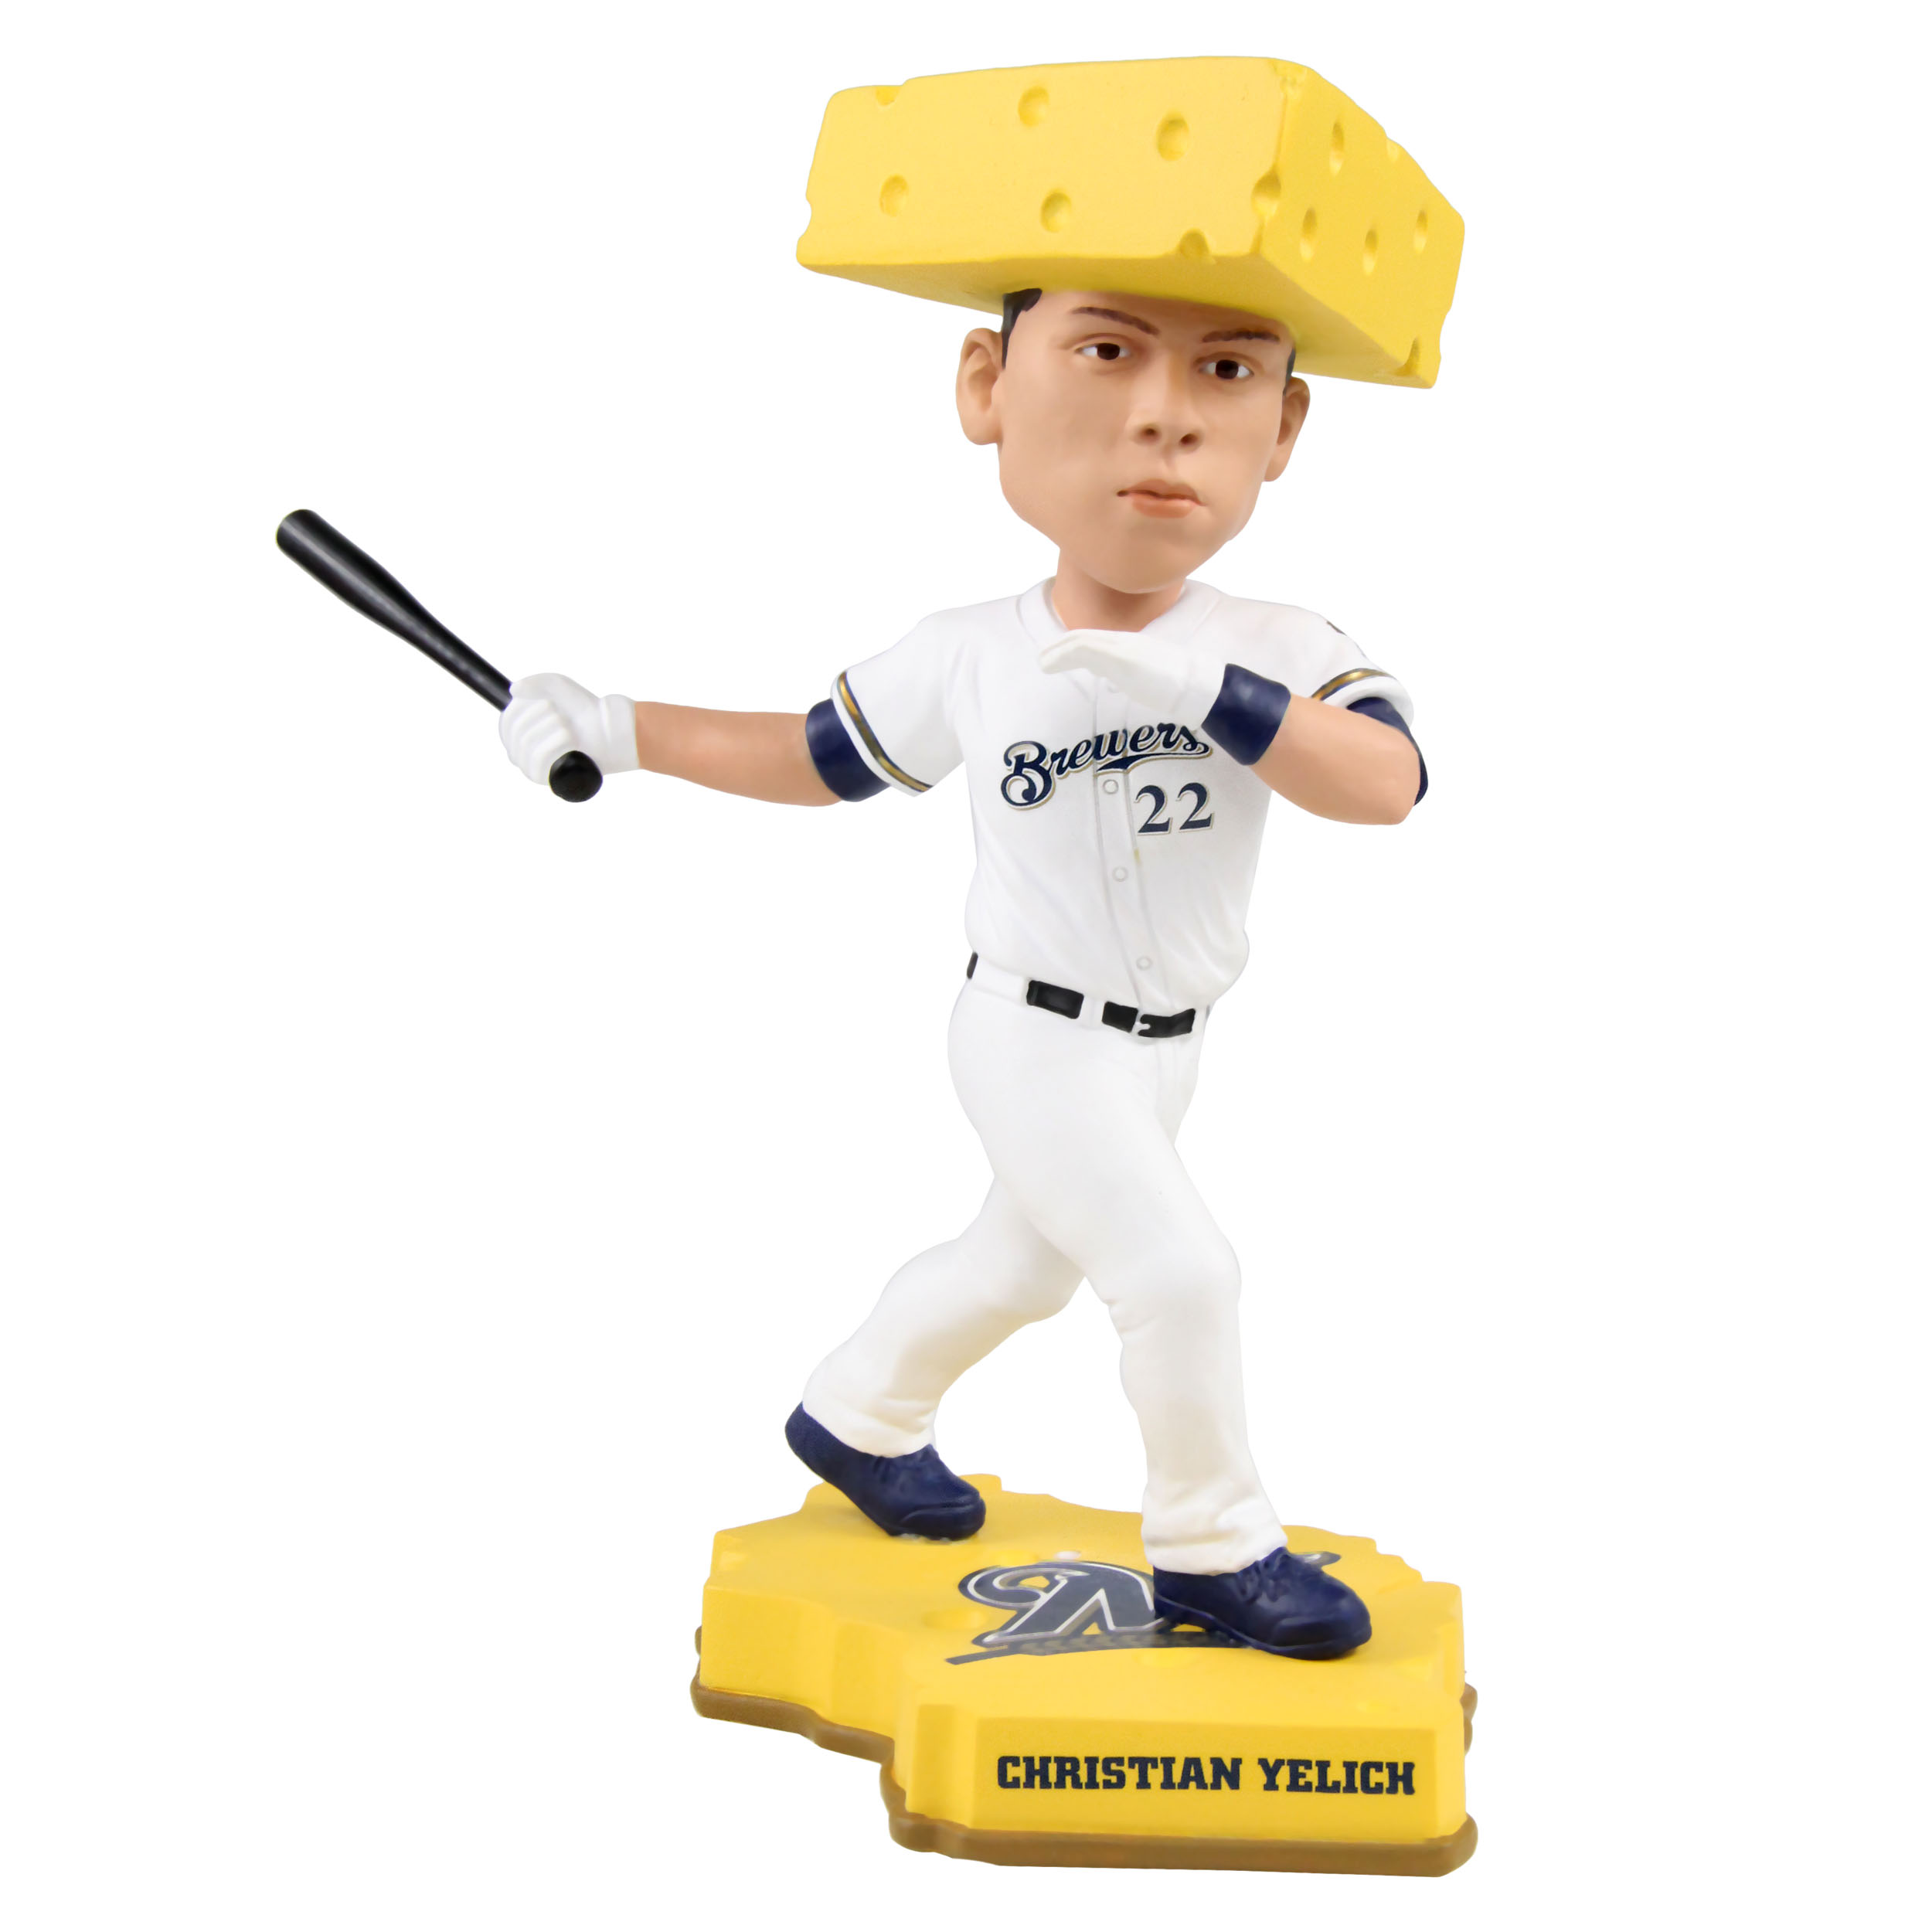 Cheesehead Bobblehead Series Featuring Bucks and Brewers Unveiled